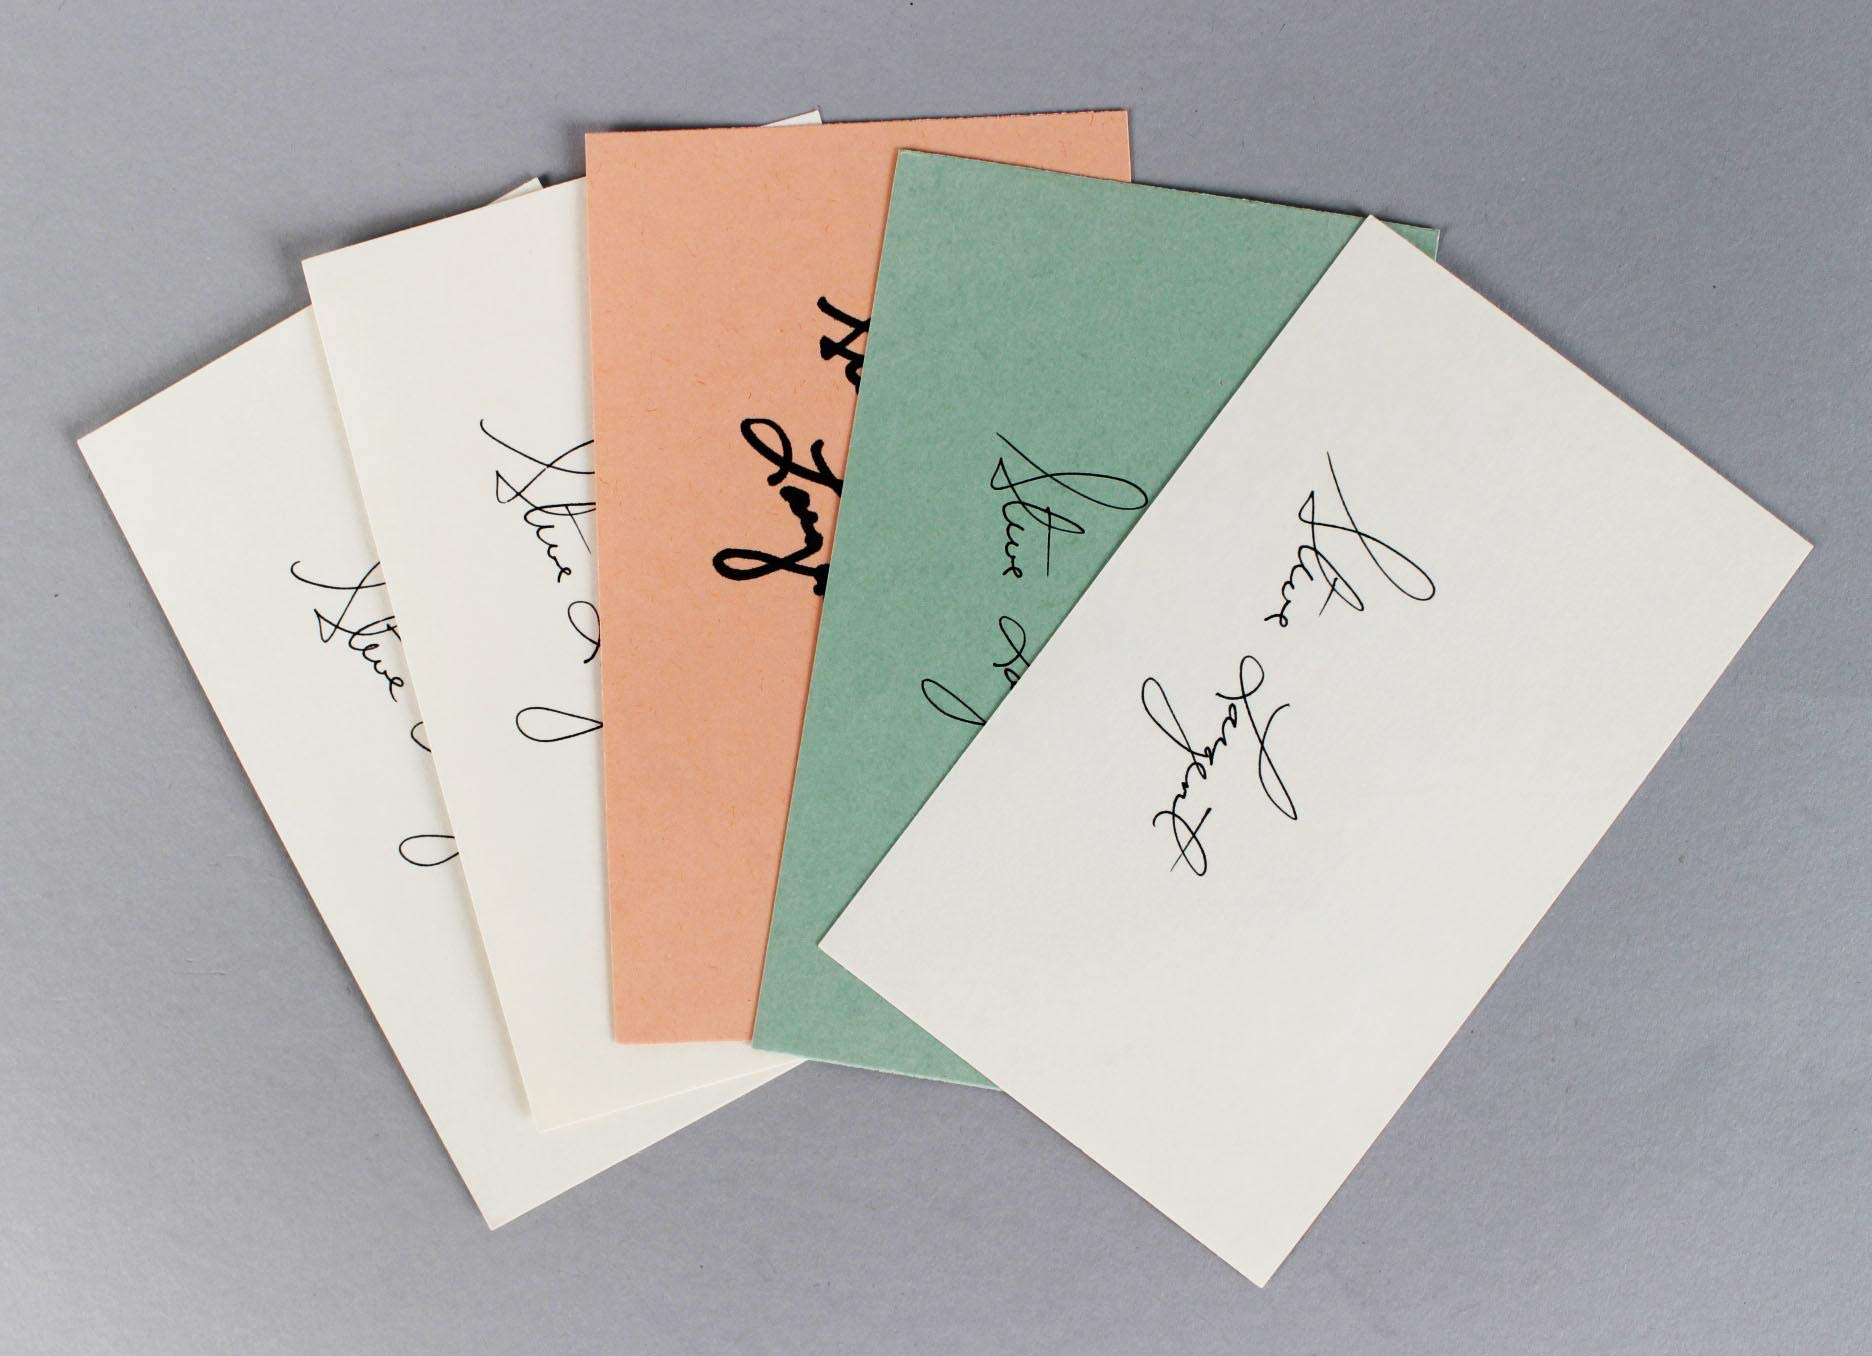 Seattle Seahawks Steve Largent Signed 35 Index Card Lot (5) () JSA Certified NFL Cut Signatures